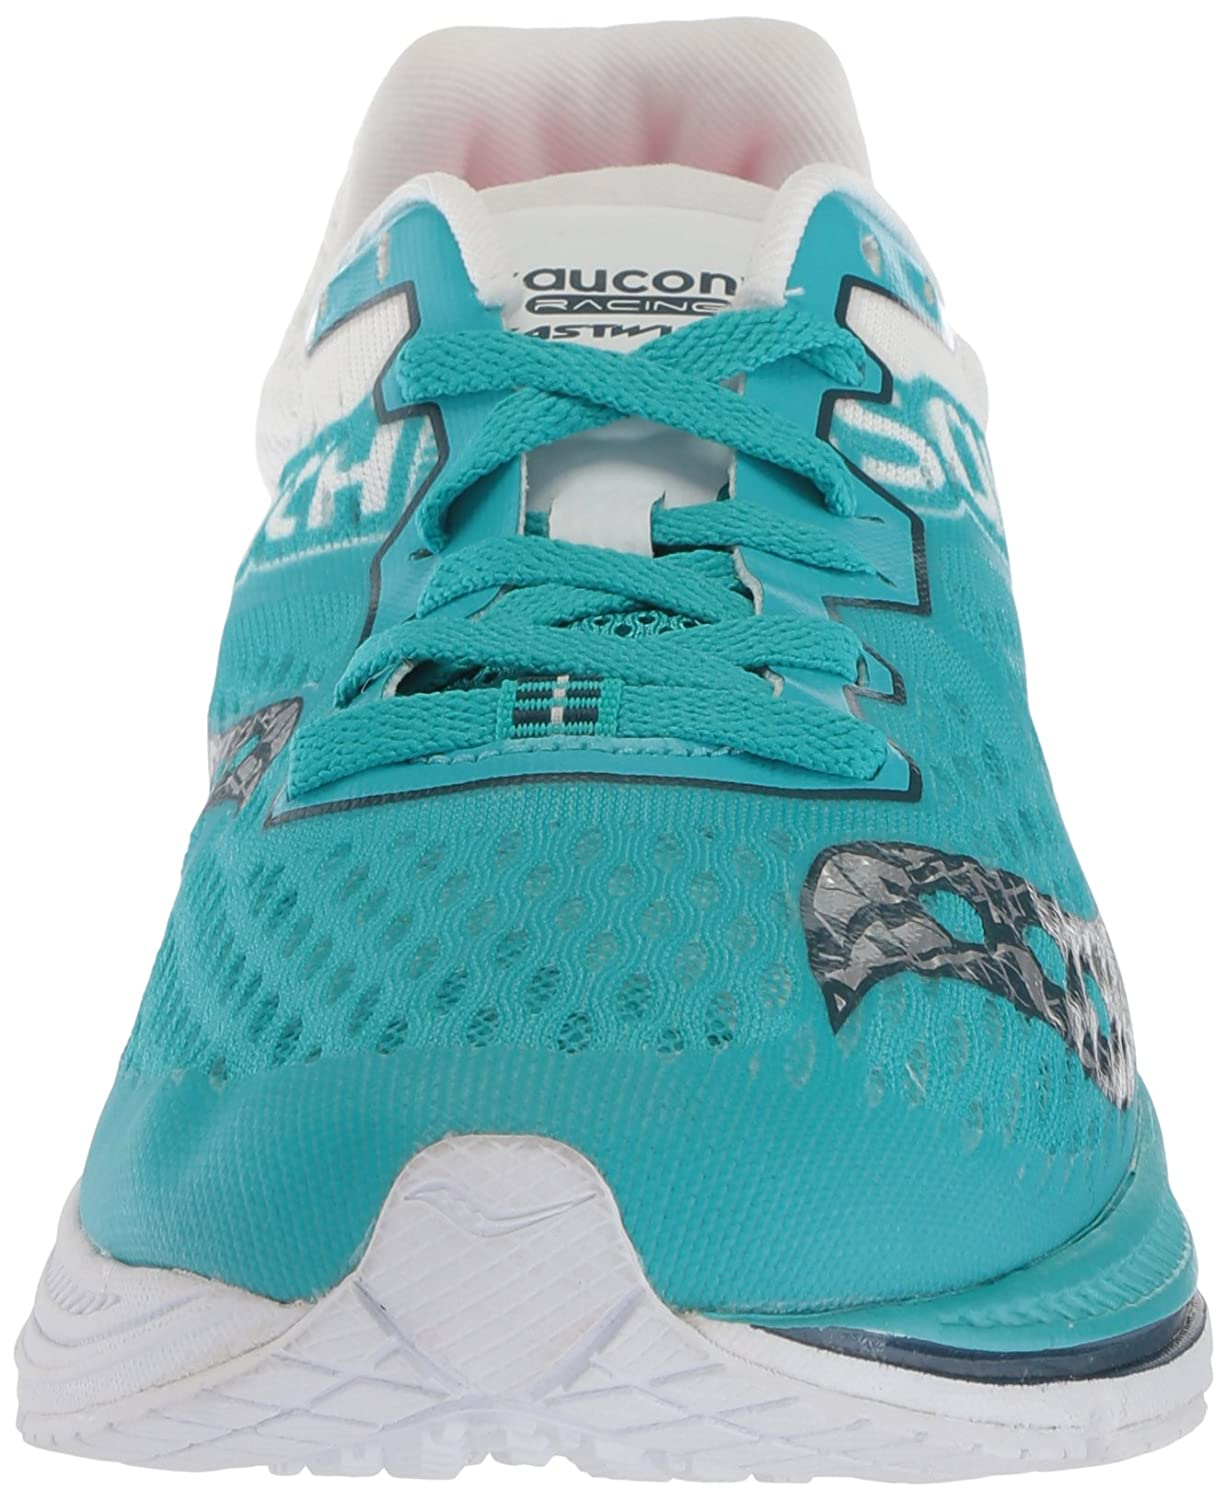 Saucony Women's Fastwitch 8 Cross Country Running Shoe B071JP1KCD 10 B(M) US|Teal/White